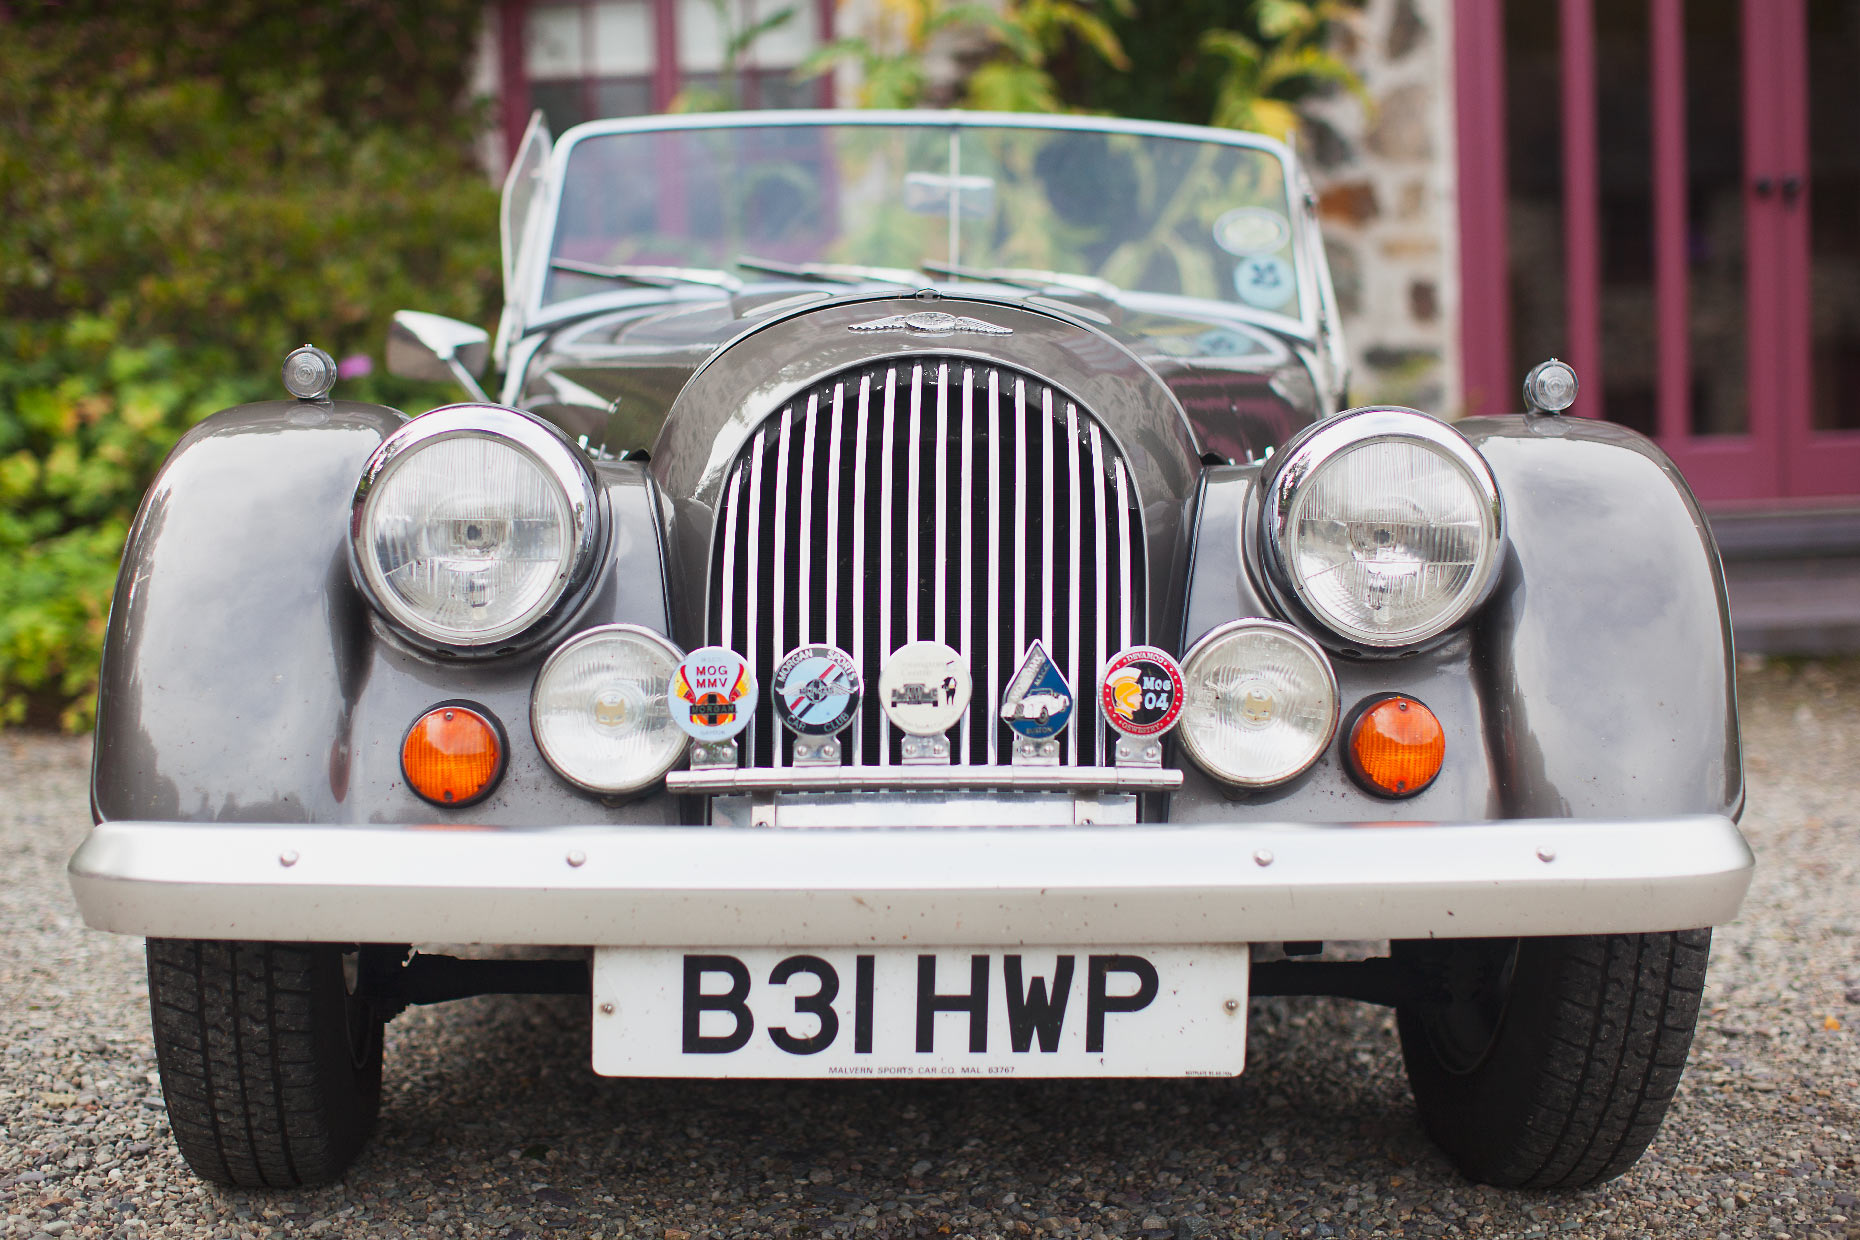 Stacey Van Berkel Photography I Bespoke British Car I Plas Cadnant, Anglesey, Wales